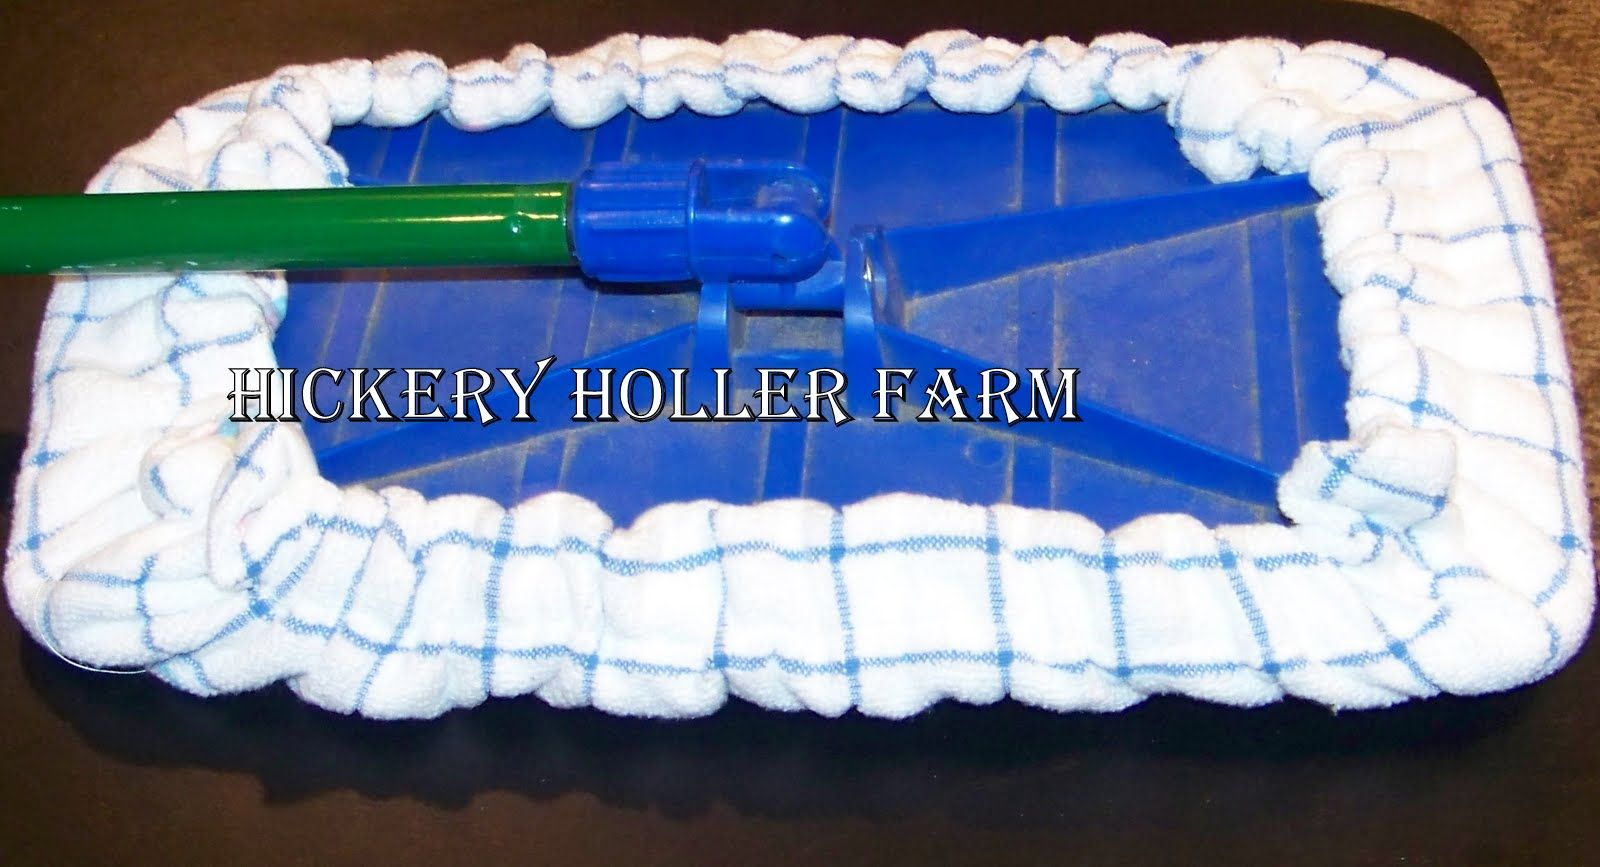 Hickery Holler Farm More Your Own New Mopheads Sewing